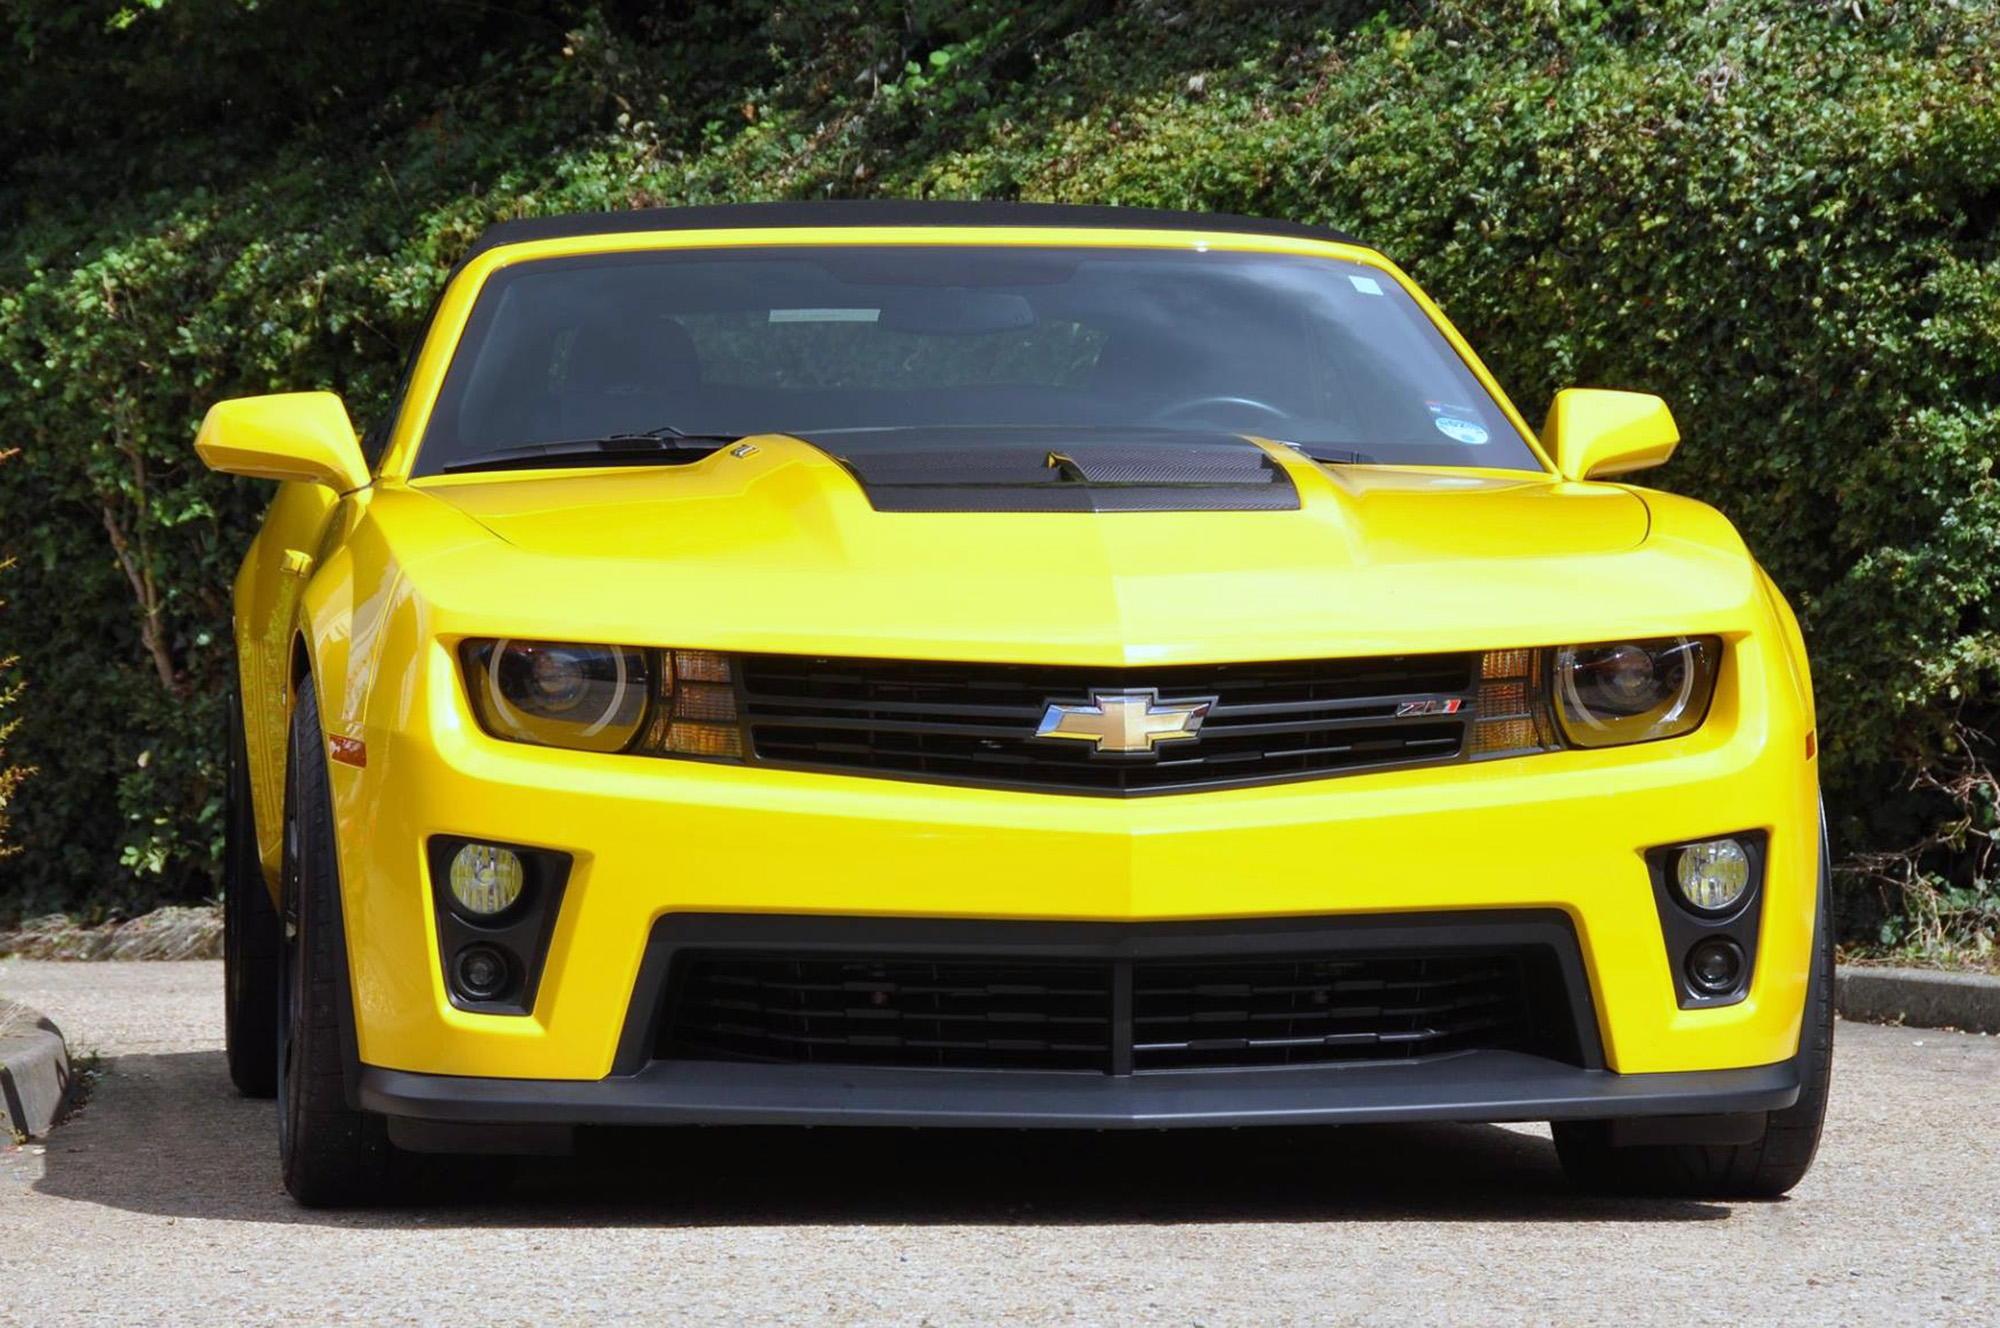 2013 Chevrolet Camaro ZL1 Supercharged